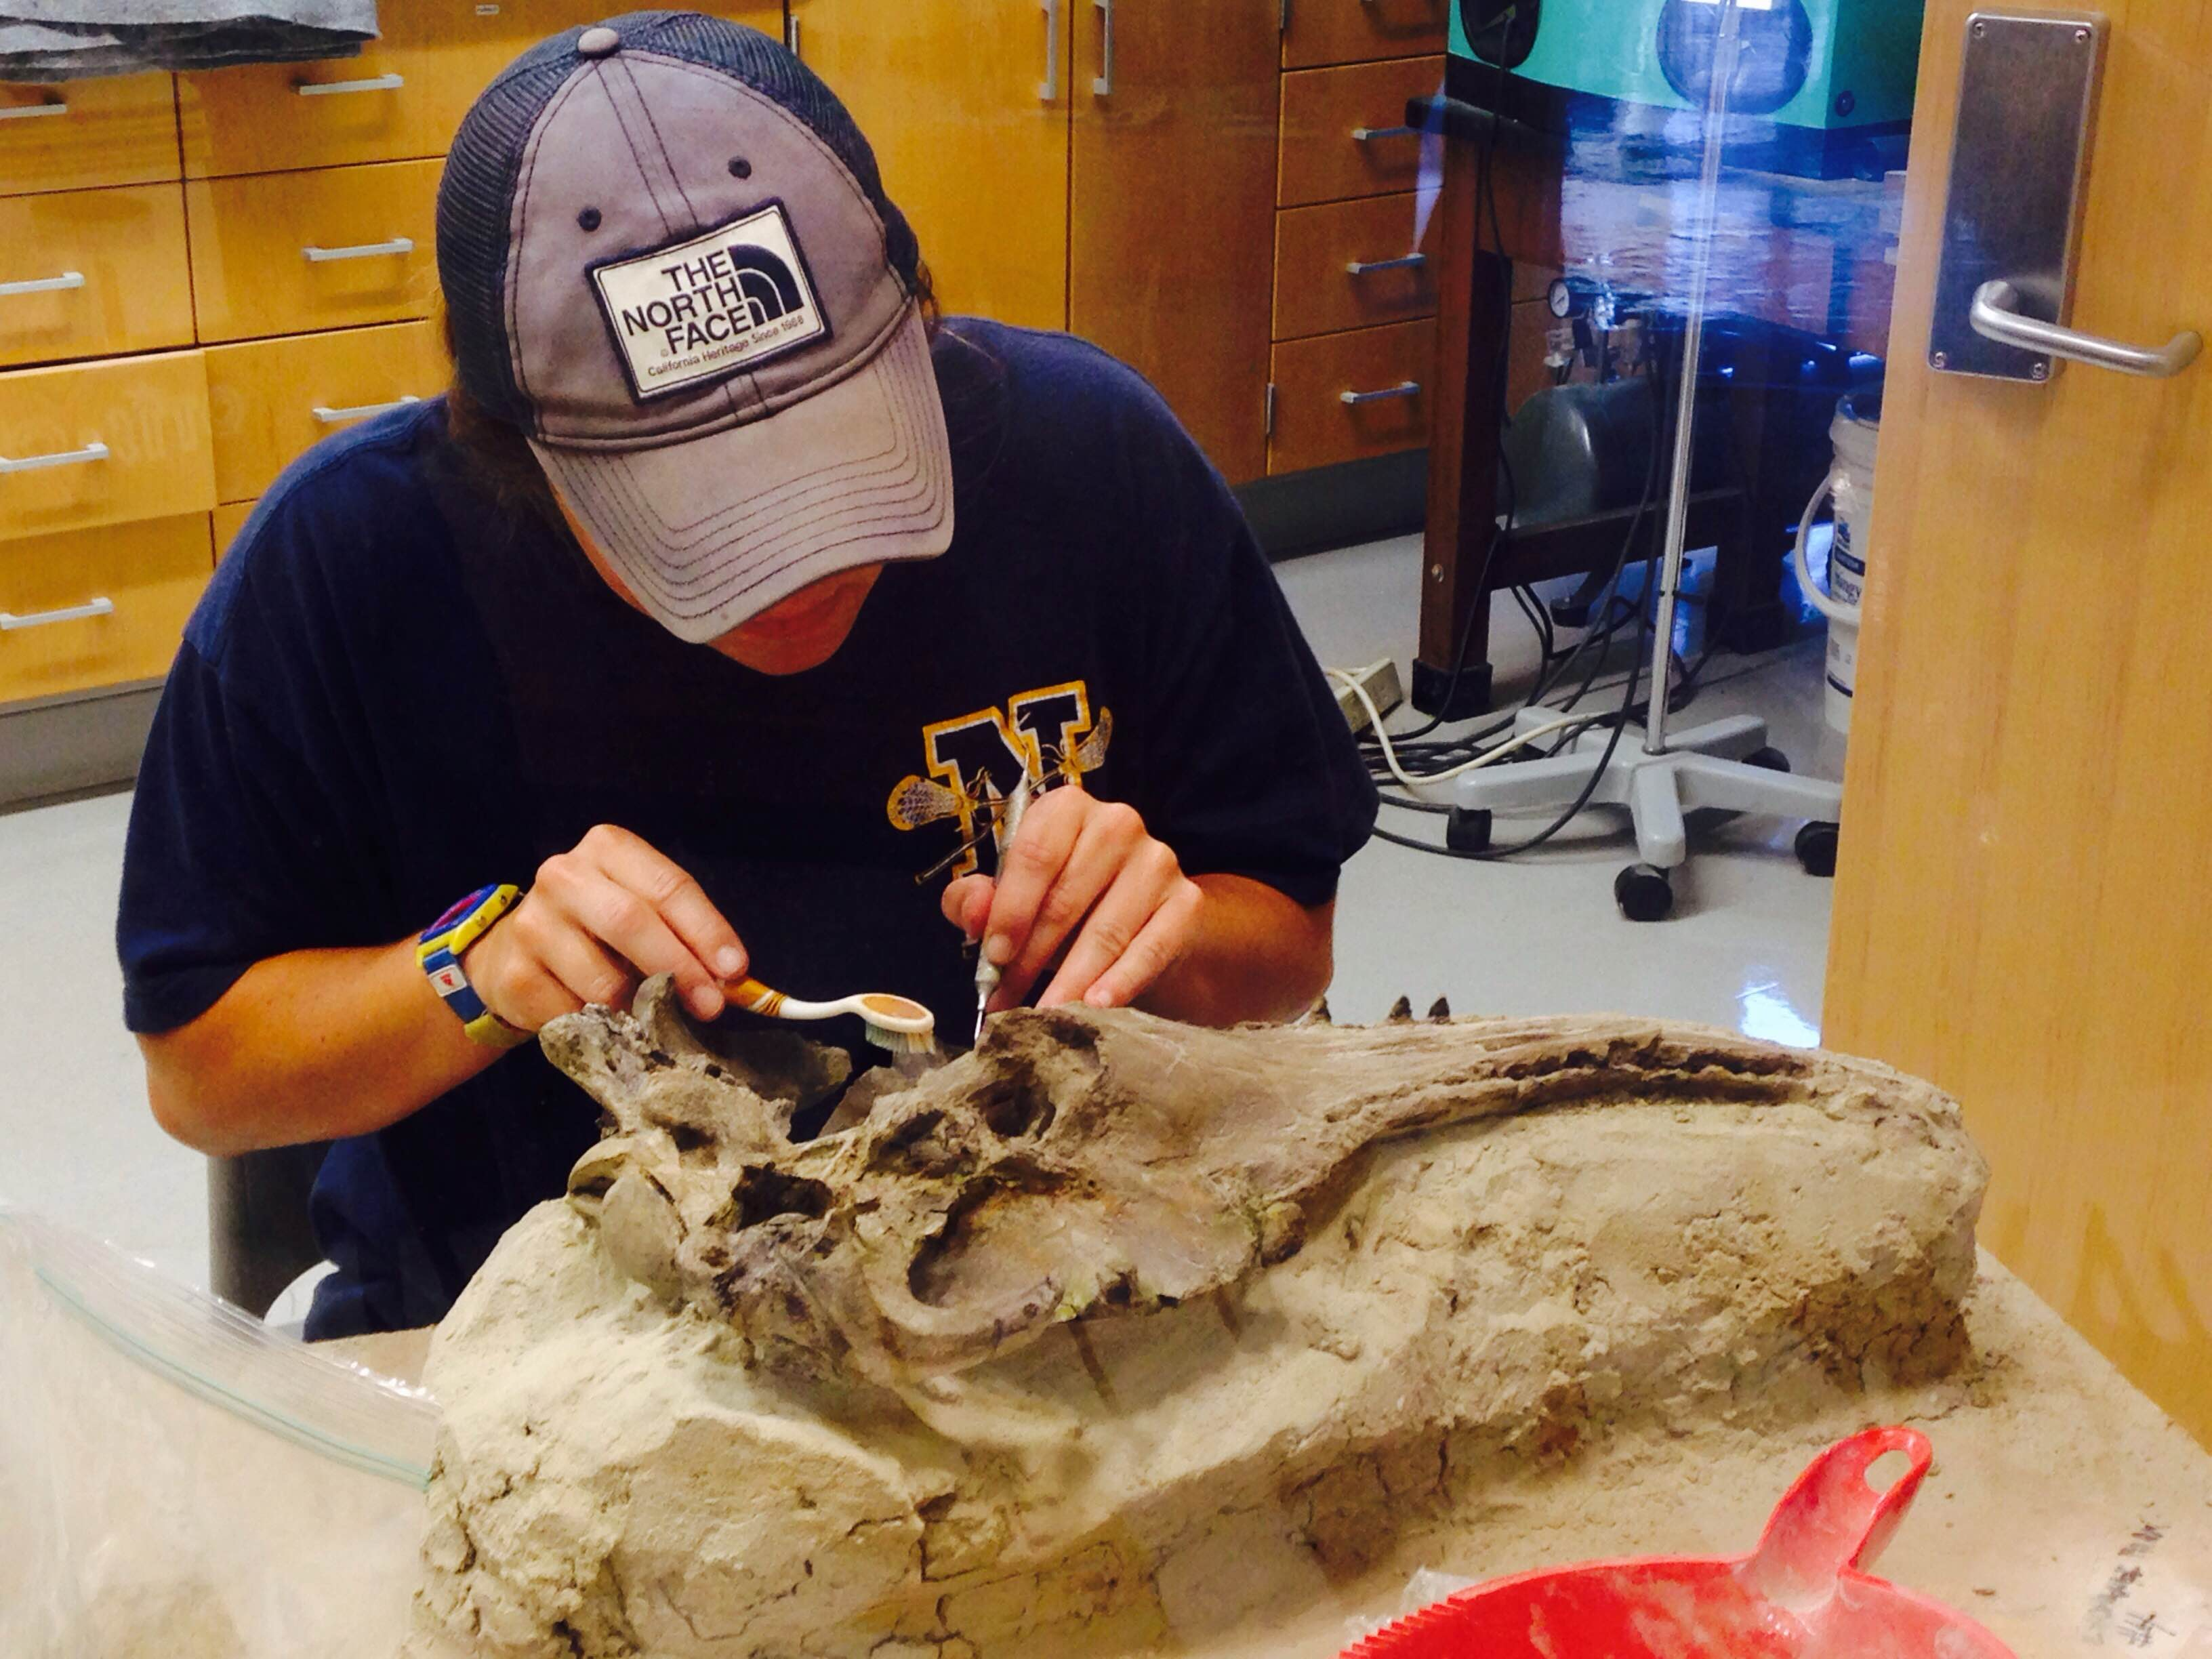 Jordy working on her Waipatiid skull. Photo by R. Boessenecker.